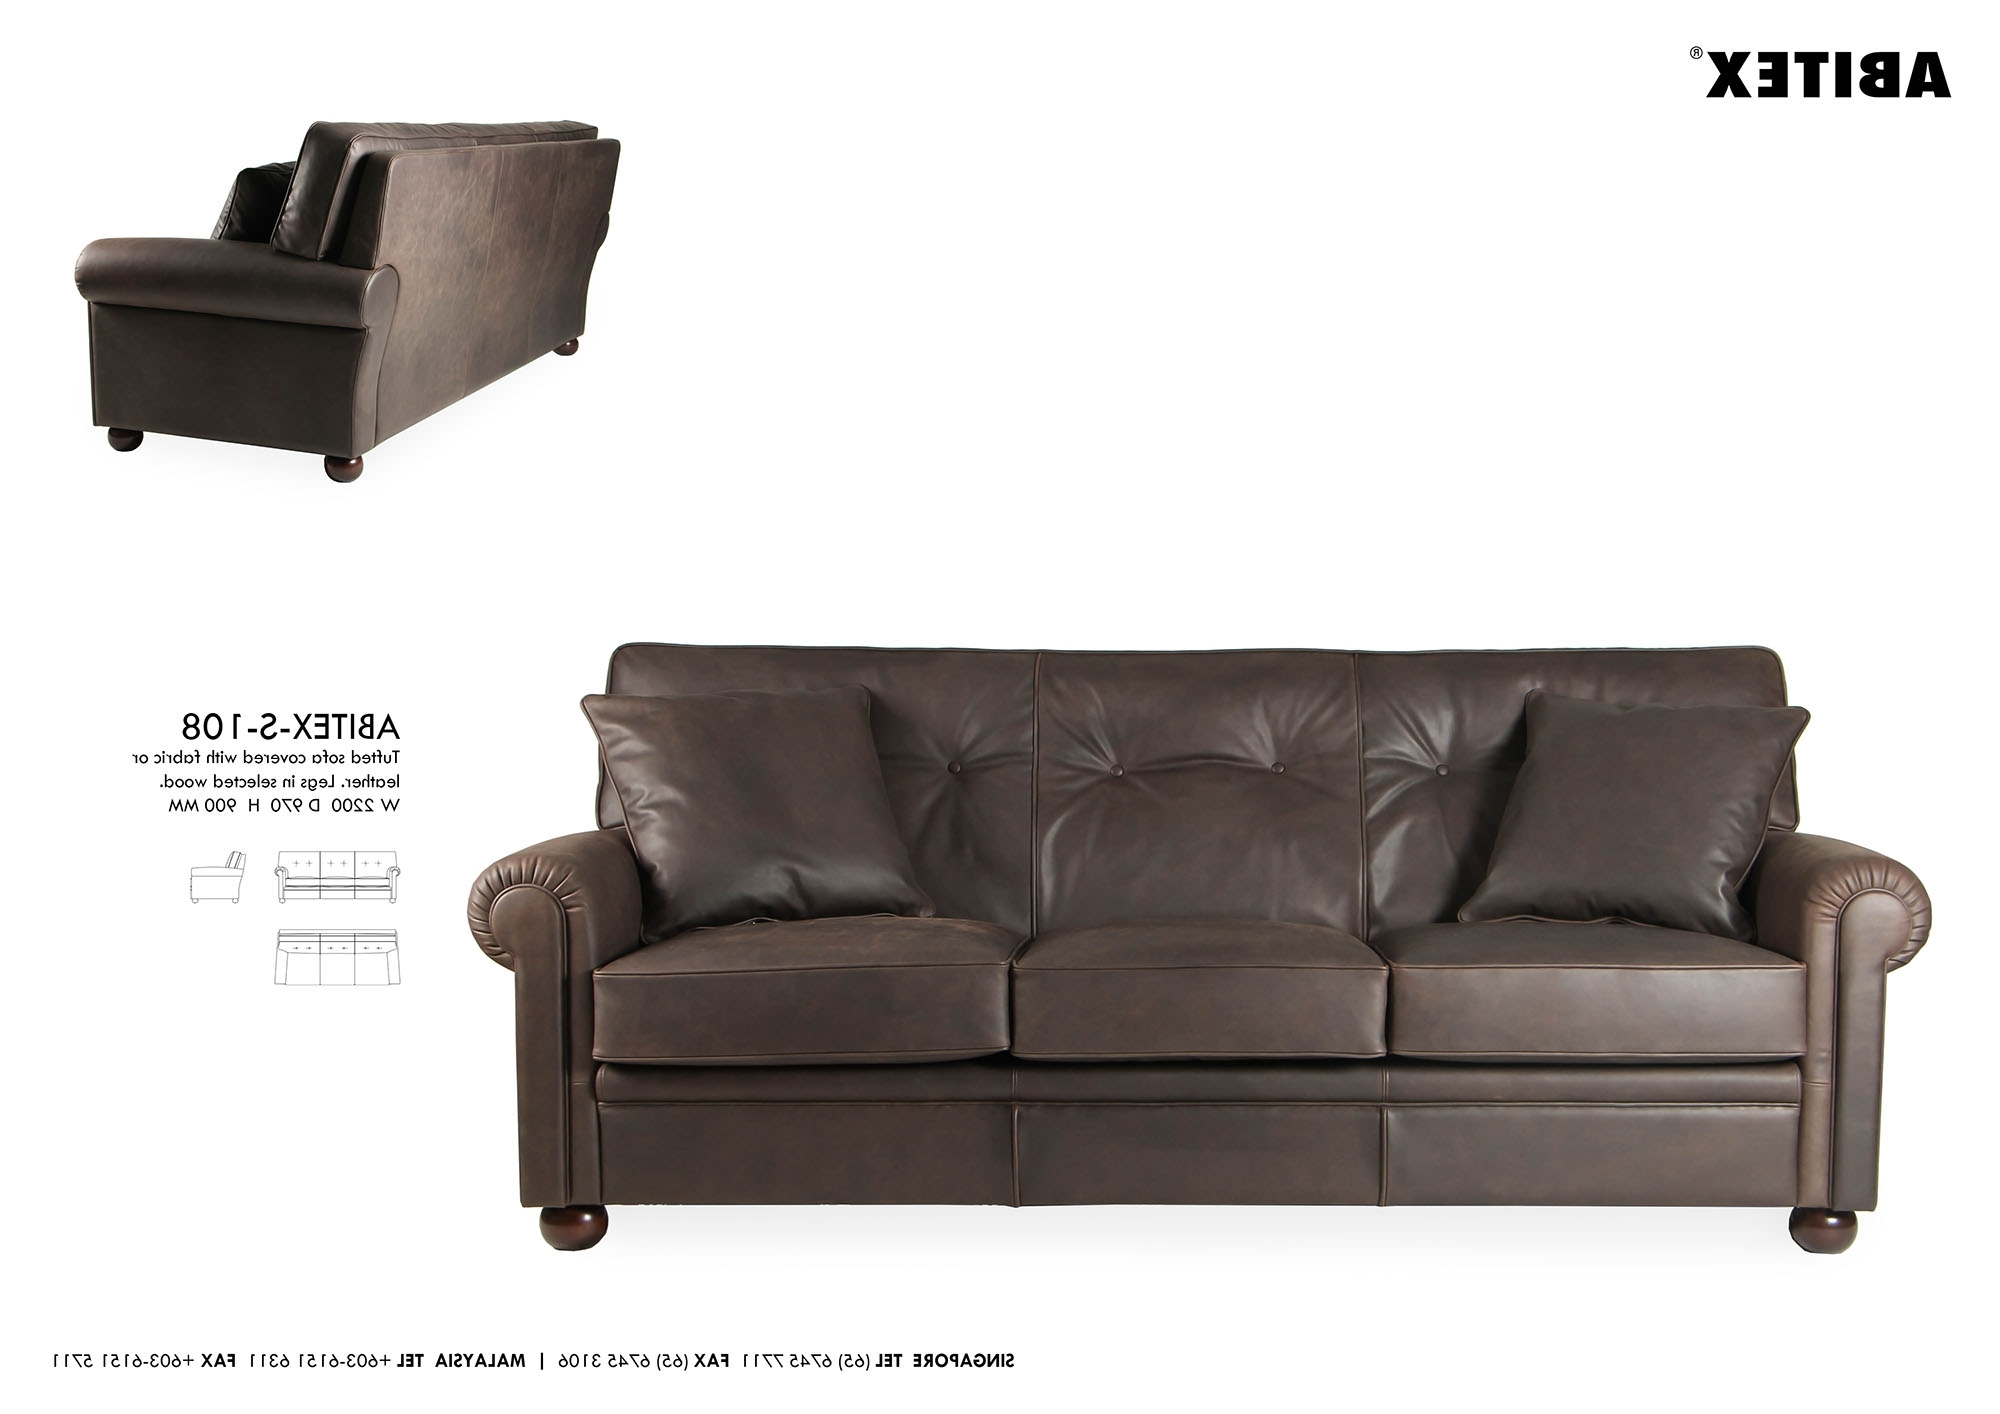 Well Known Dufresne Sectional Sofas With Regard To Furniture : Button Tufted Fabric Sofa Sofa Dallas Furniture Ottawa (View 2 of 15)